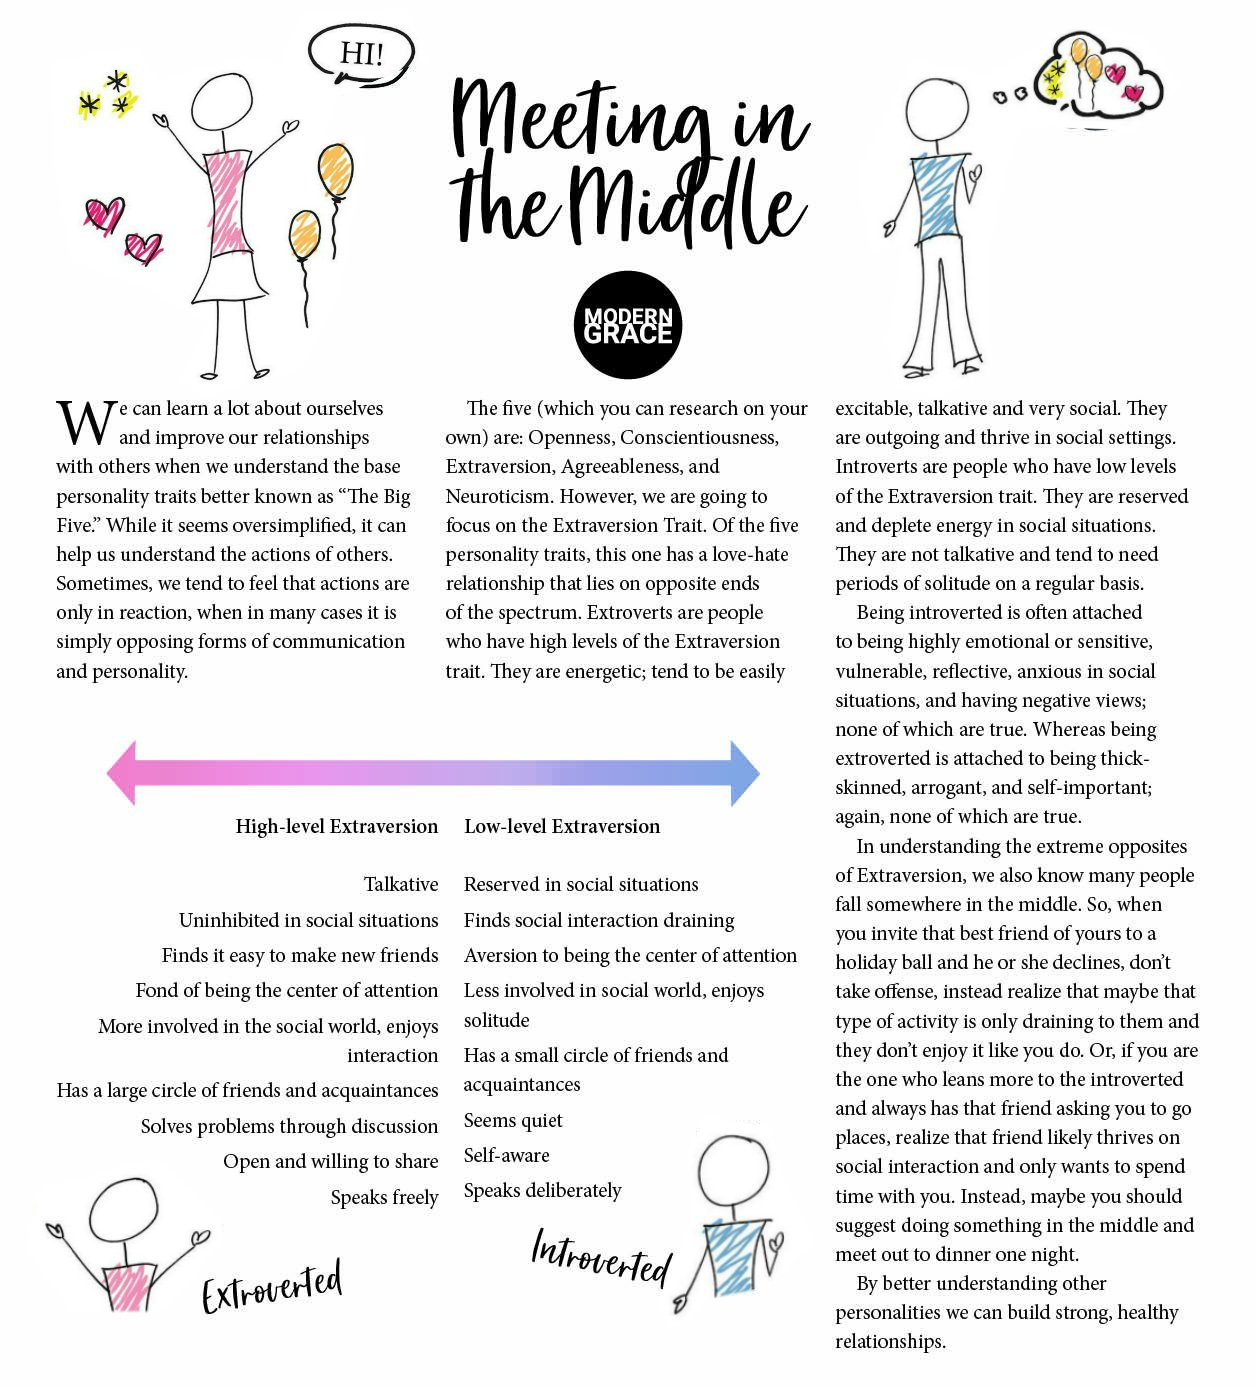 Michelle Jester - Meeting in the middle -Modern Grace Magazine.jpg